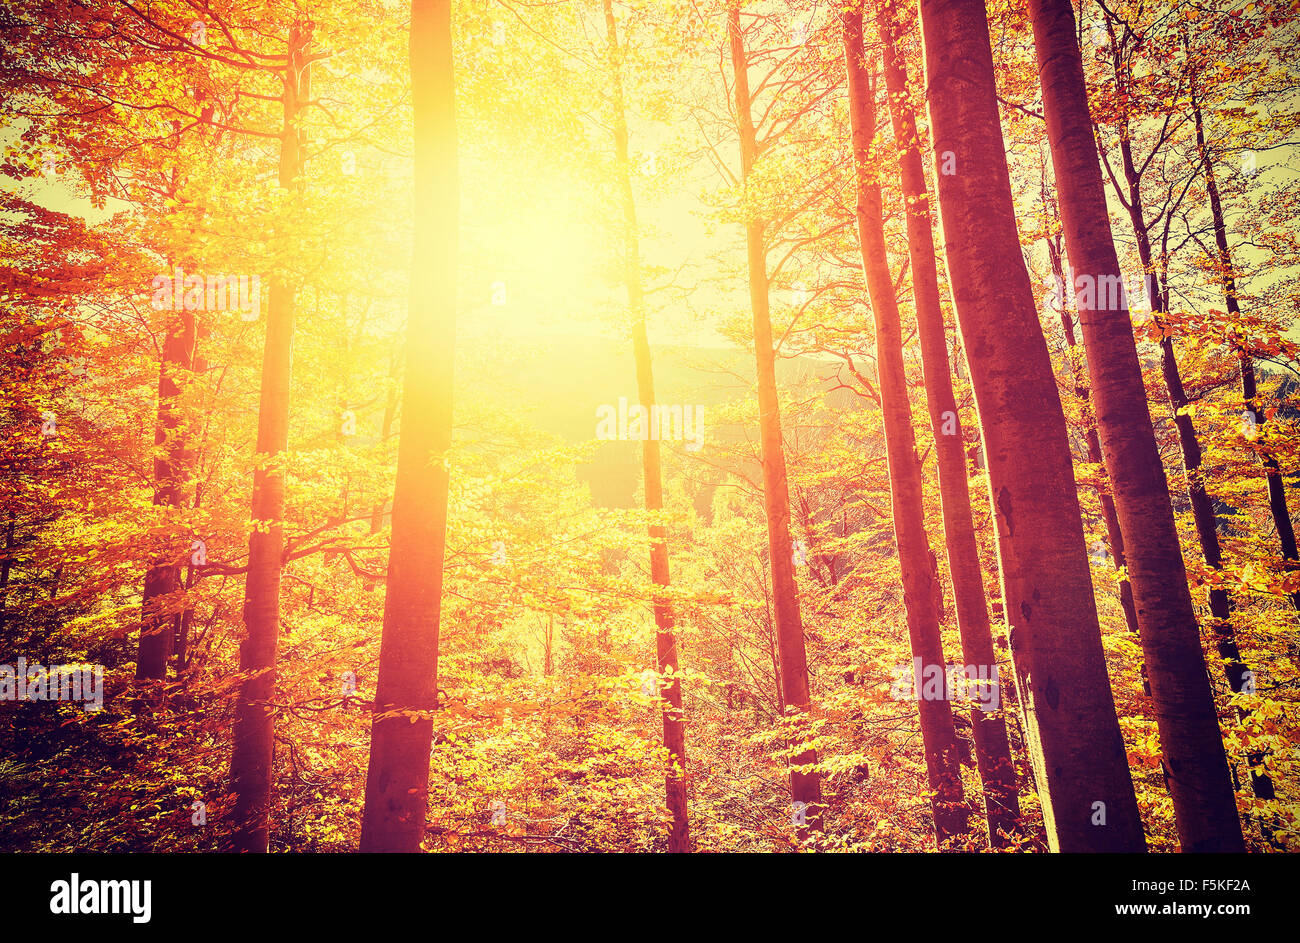 Retro toned picture of autumnal forest at sunset. - Stock Image